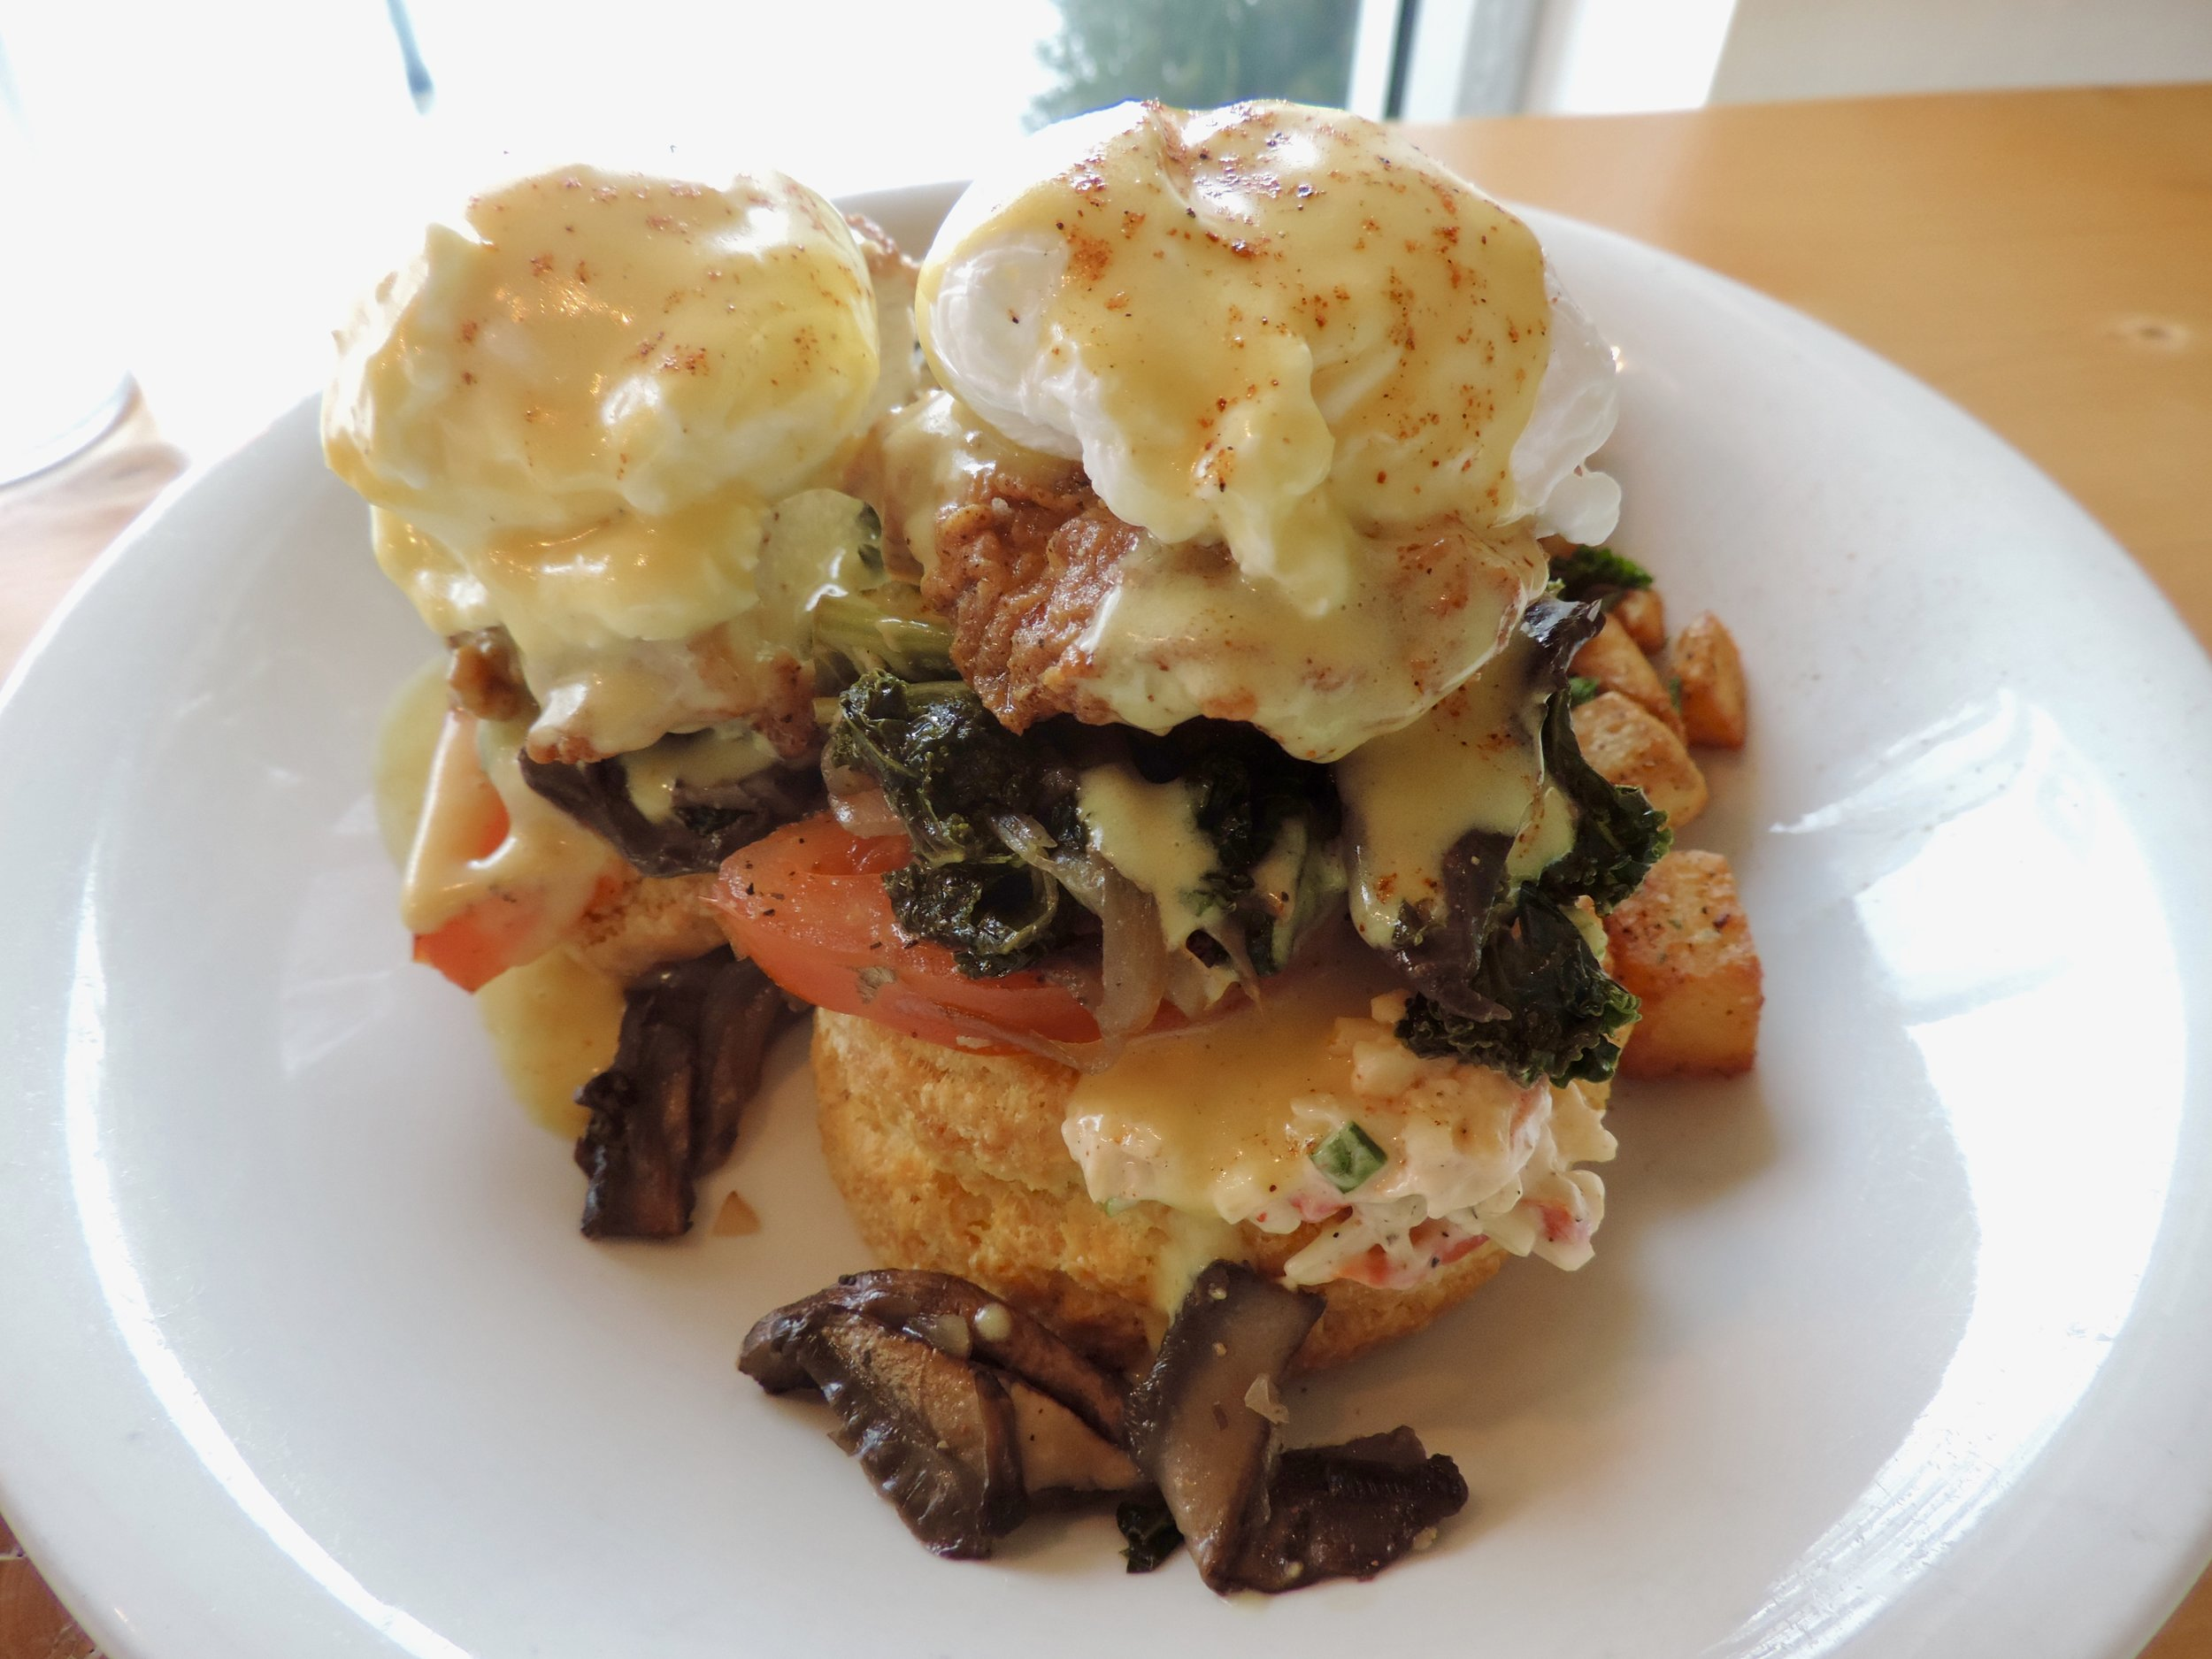 My friend had the Veggie and Chicken Benny's which was really delicious